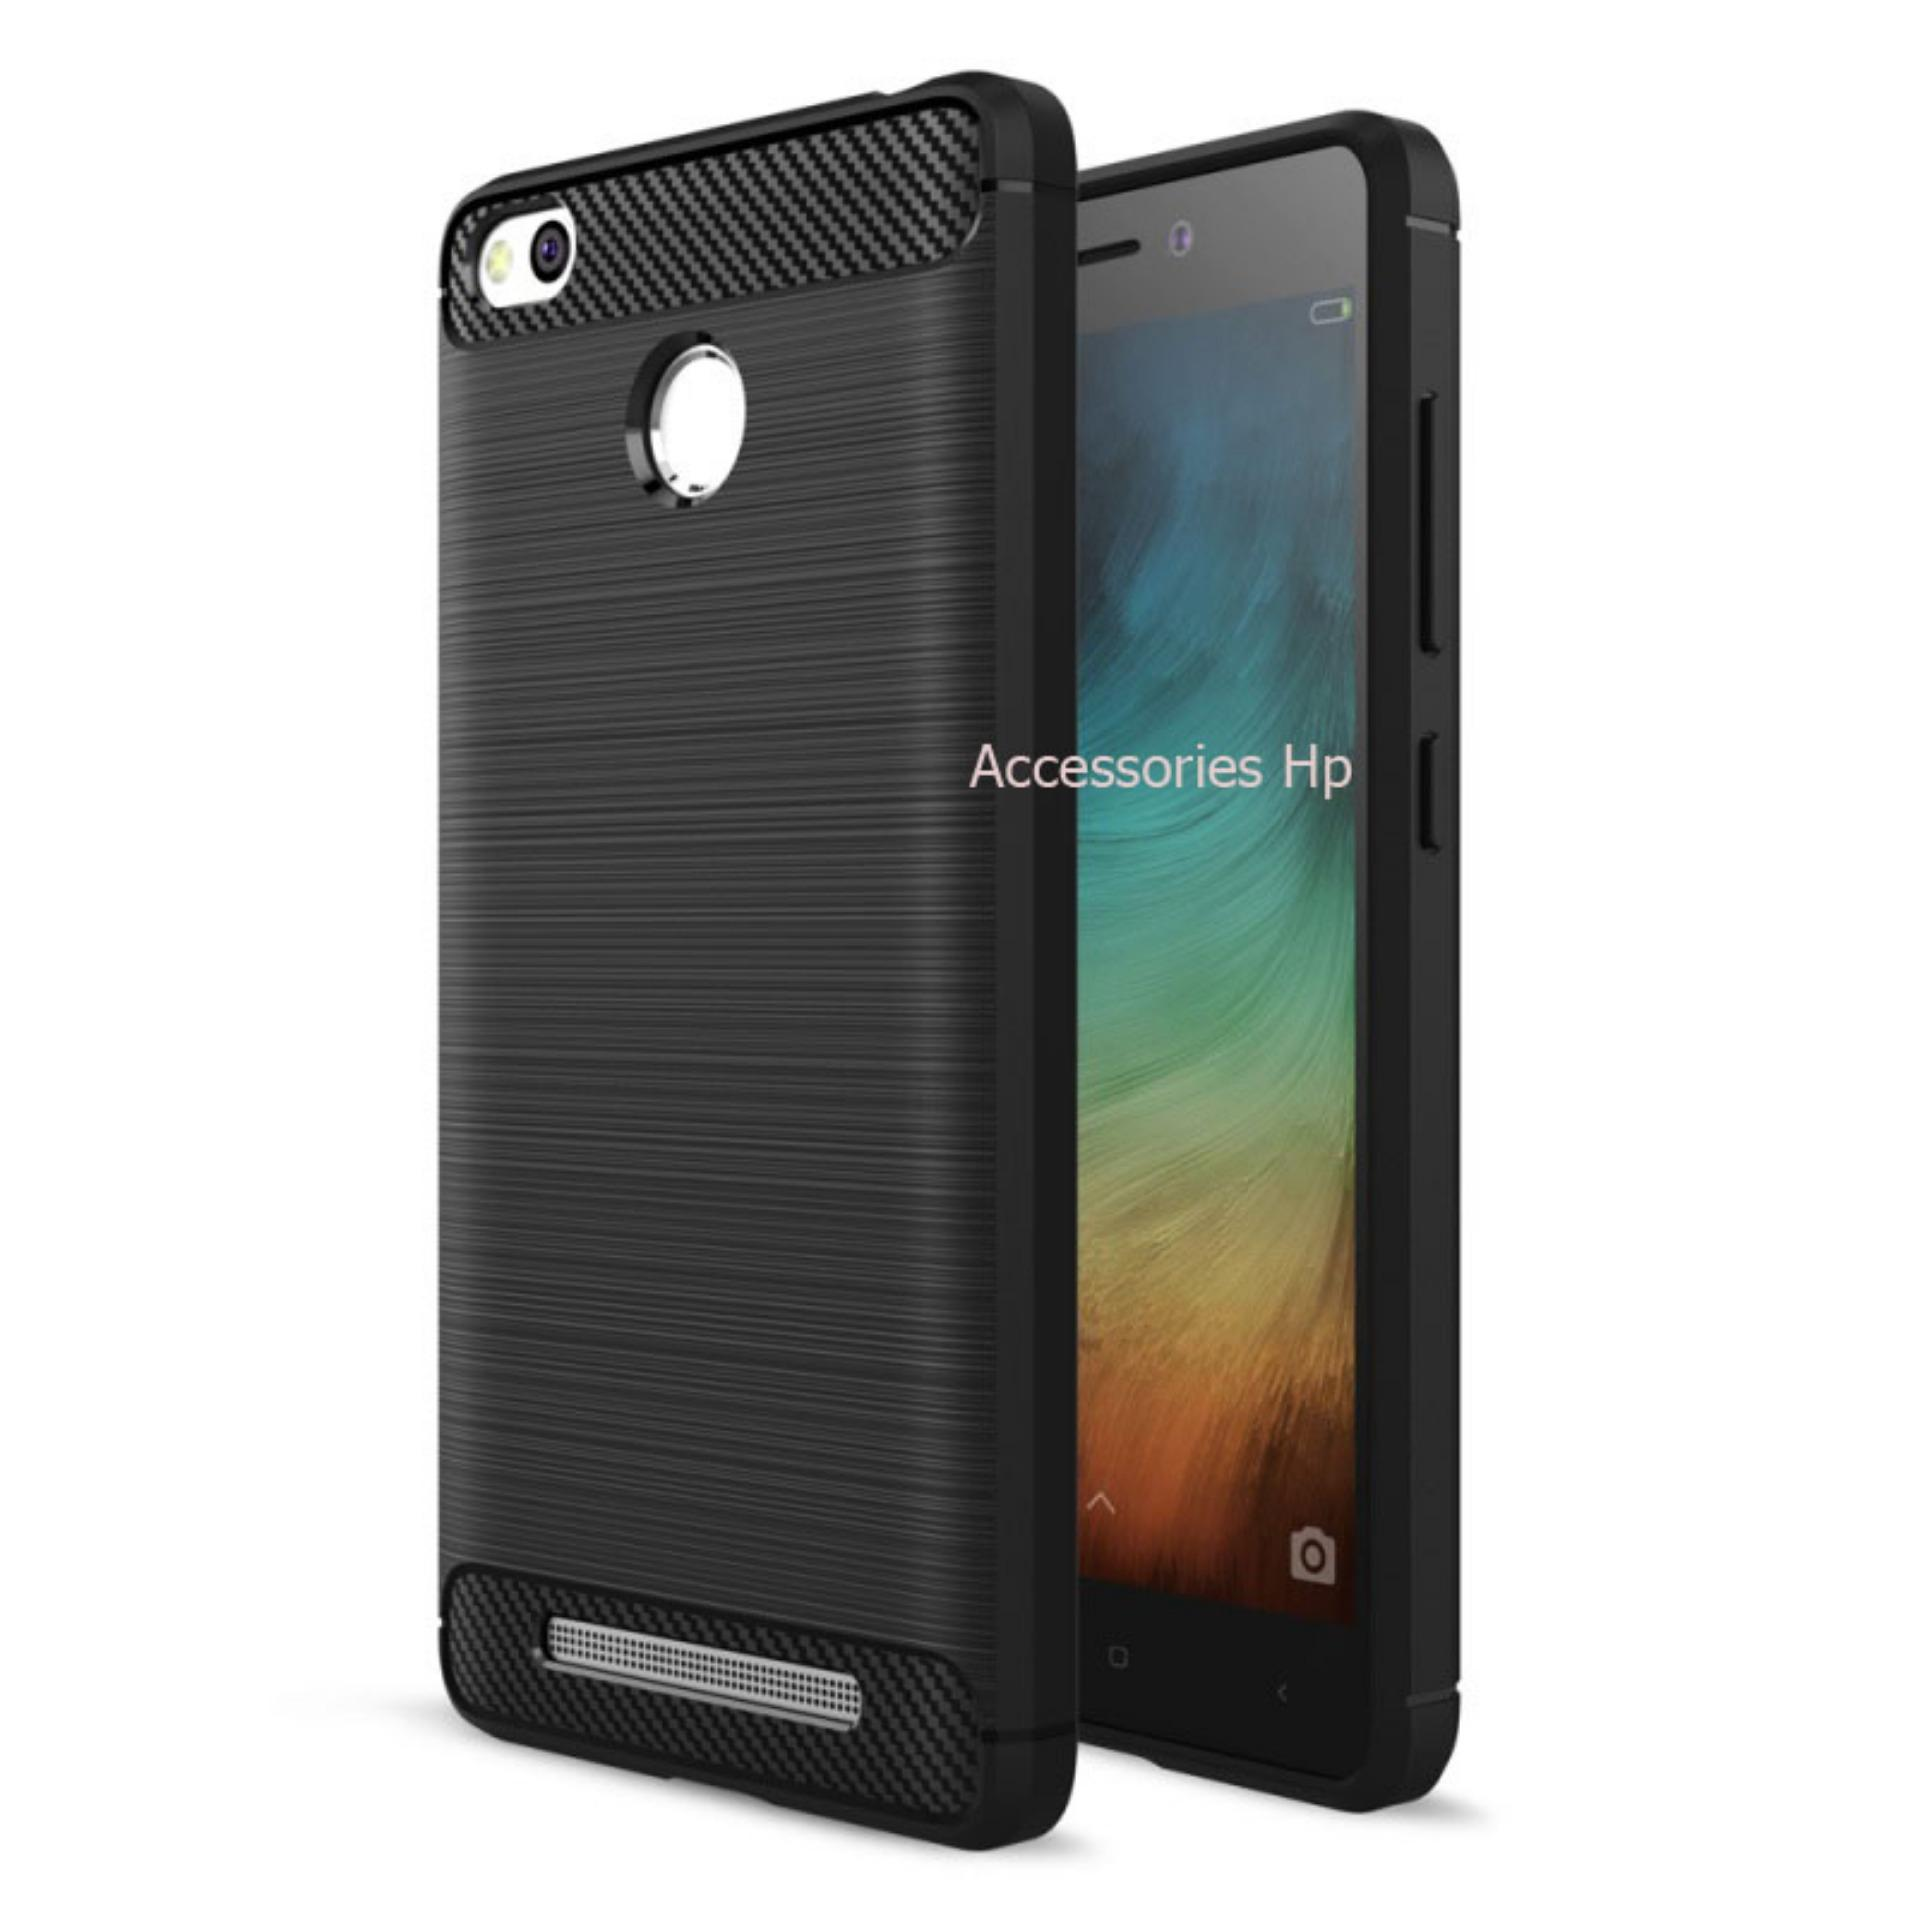 Accessories HP Premium Quality Carbon Shockproof Hybrid Case for Xiaomi Redmi 3 Pro / 3s / 3 Prime - Black